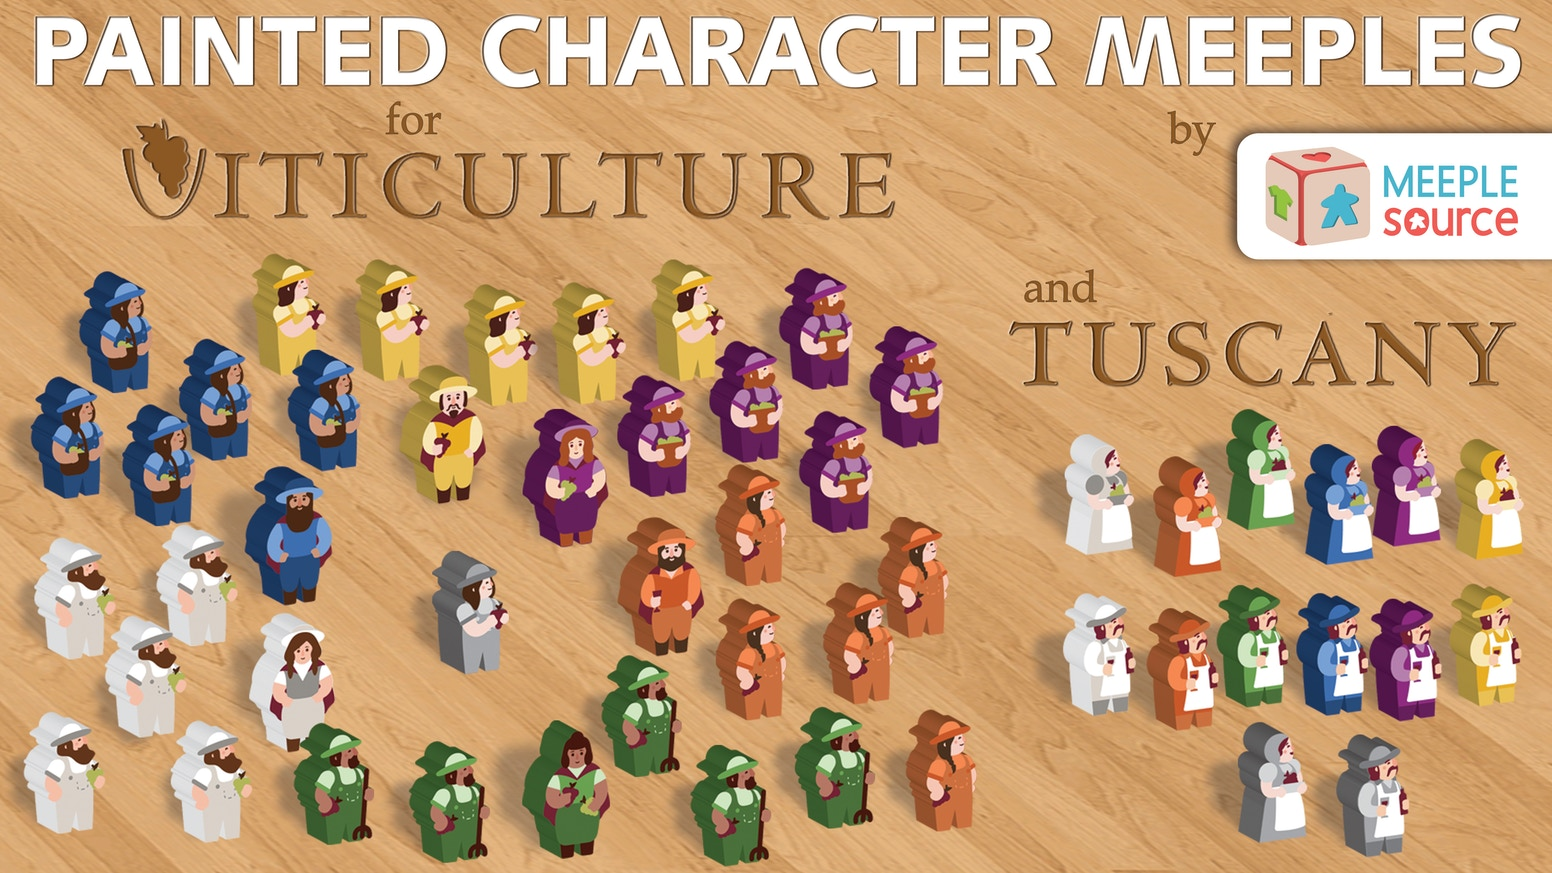 Beautifully painted Character Meeples (by Meeple Source) for Viticulture & Tuscany, the beloved winemaking games from Stonemaier Games!